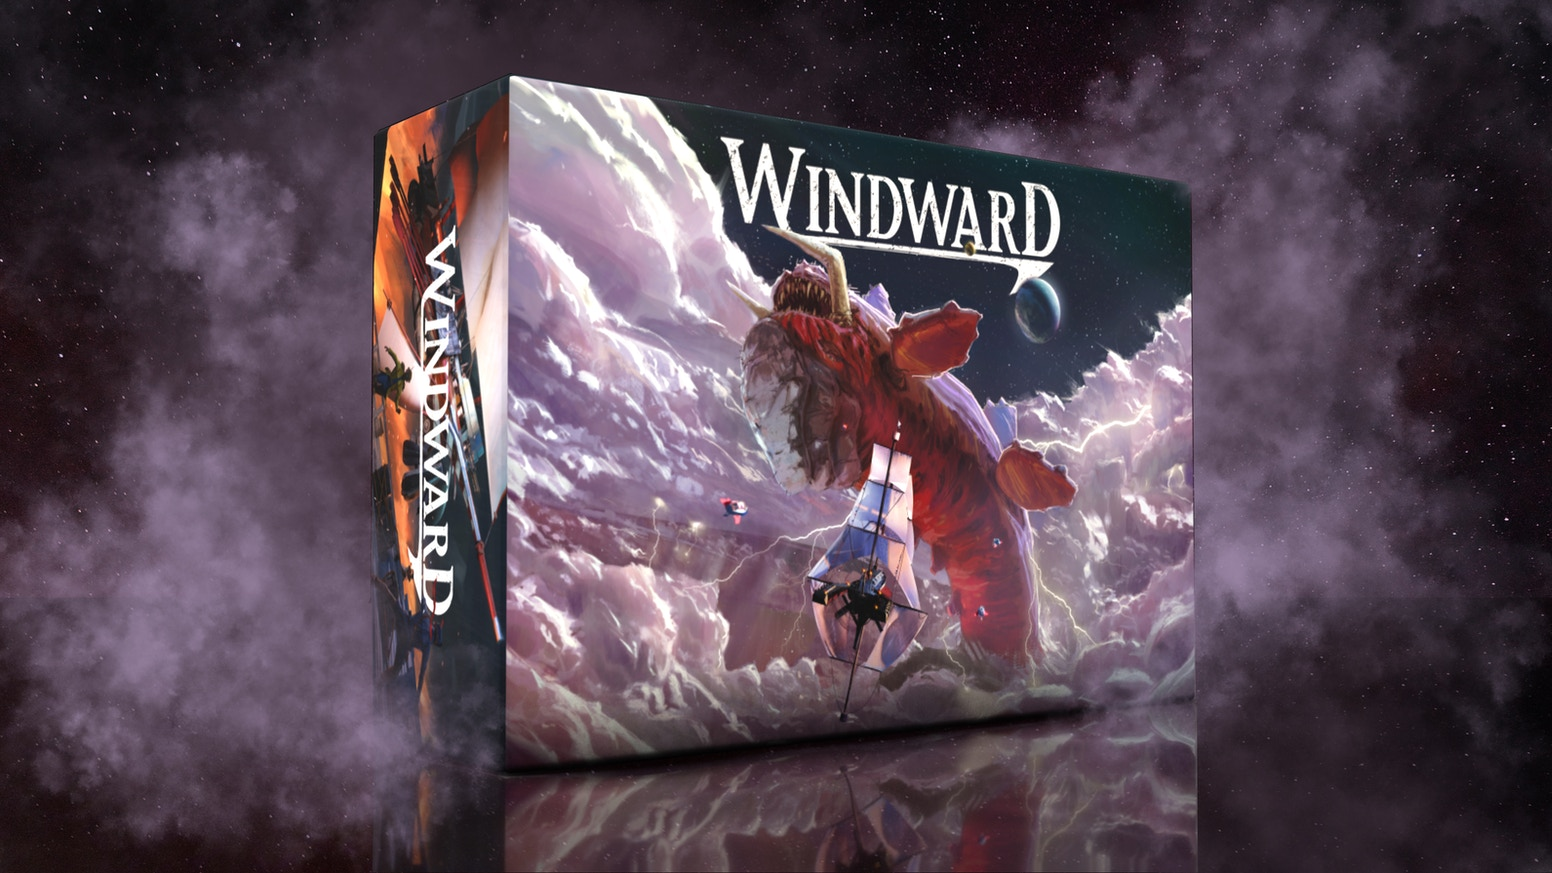 Become the most notorious sky captain by harnessing the wind, hunting leviathans, and plundering opponents.